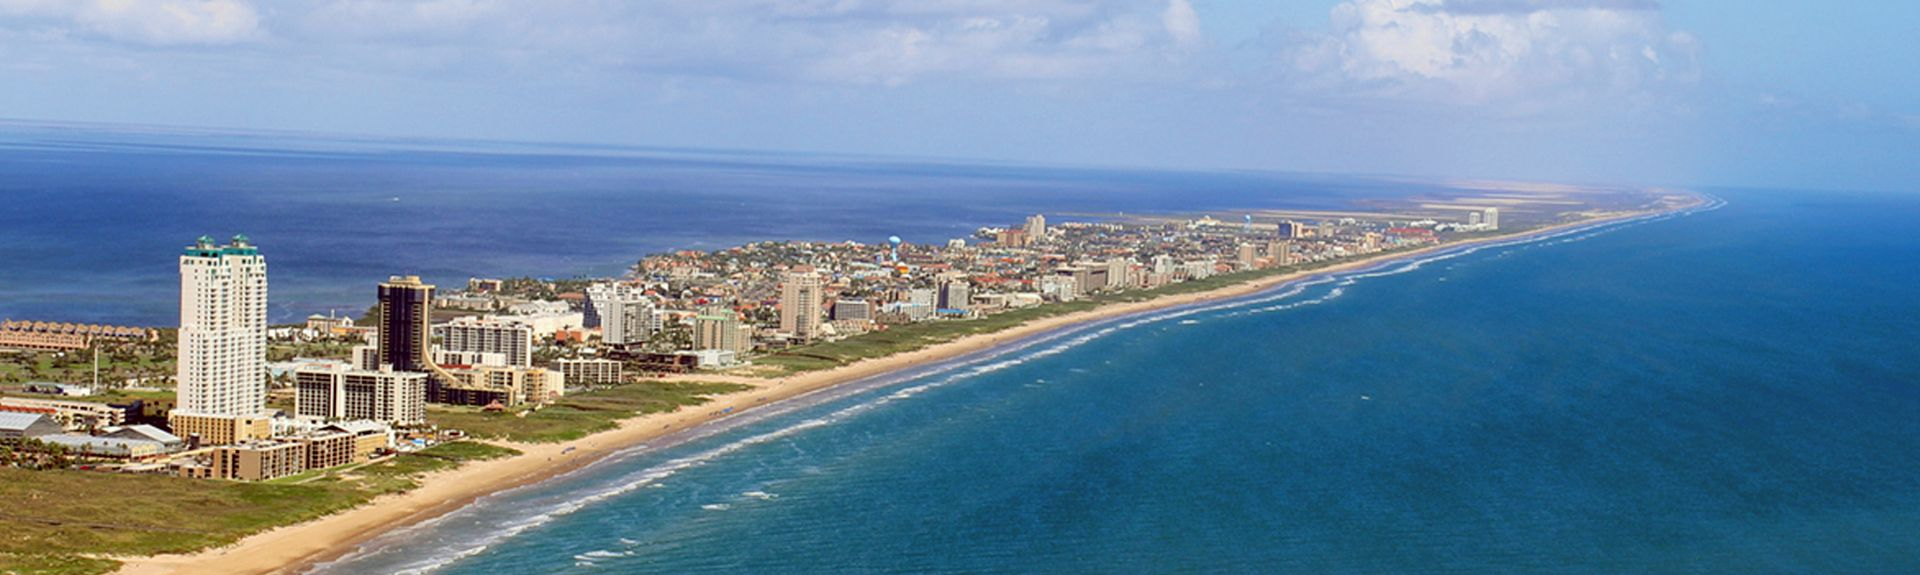 South Padre Island, Texas, Estados Unidos